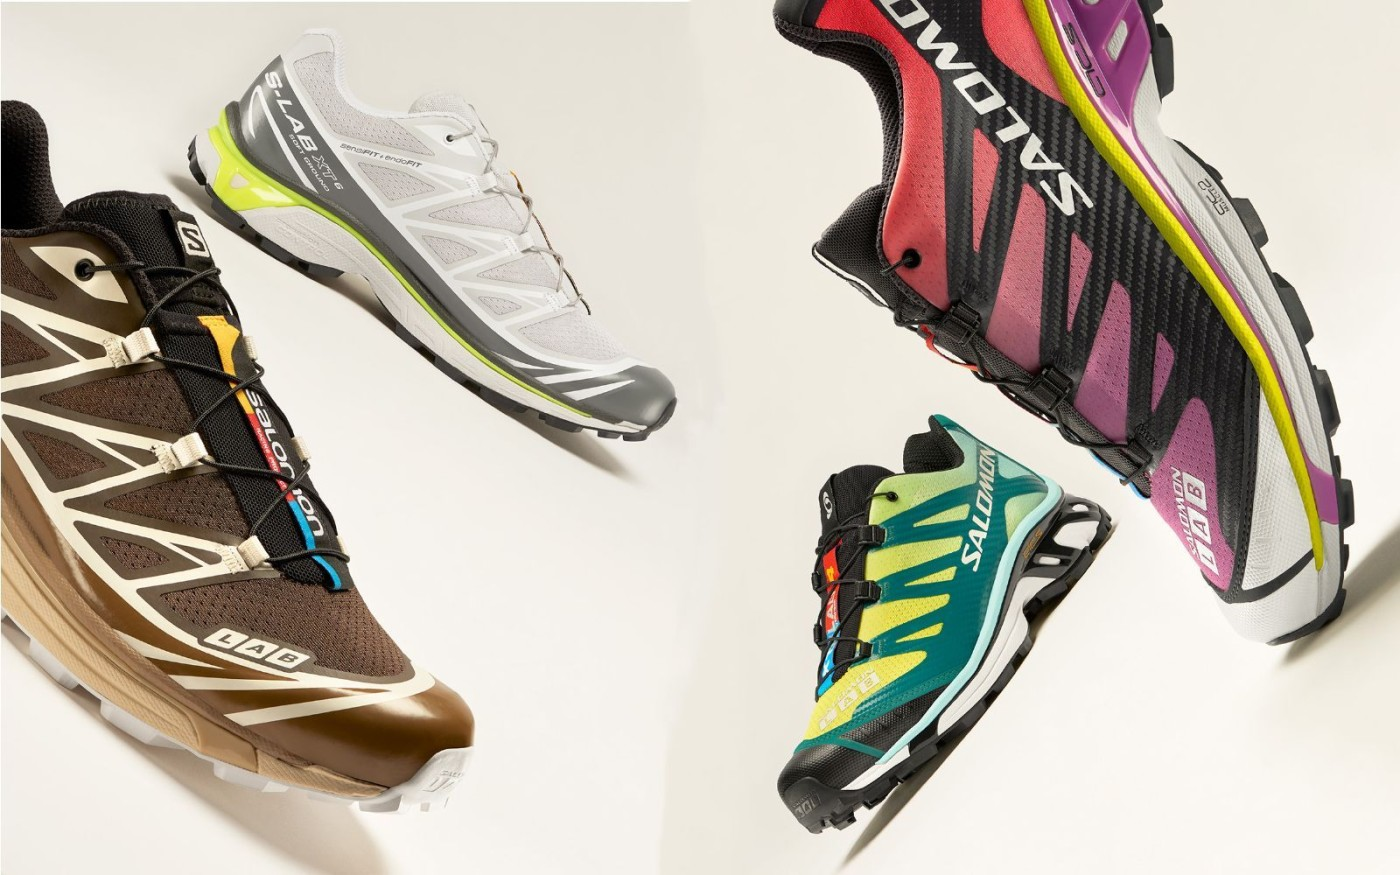 salomon-ss21-collection-1-feature